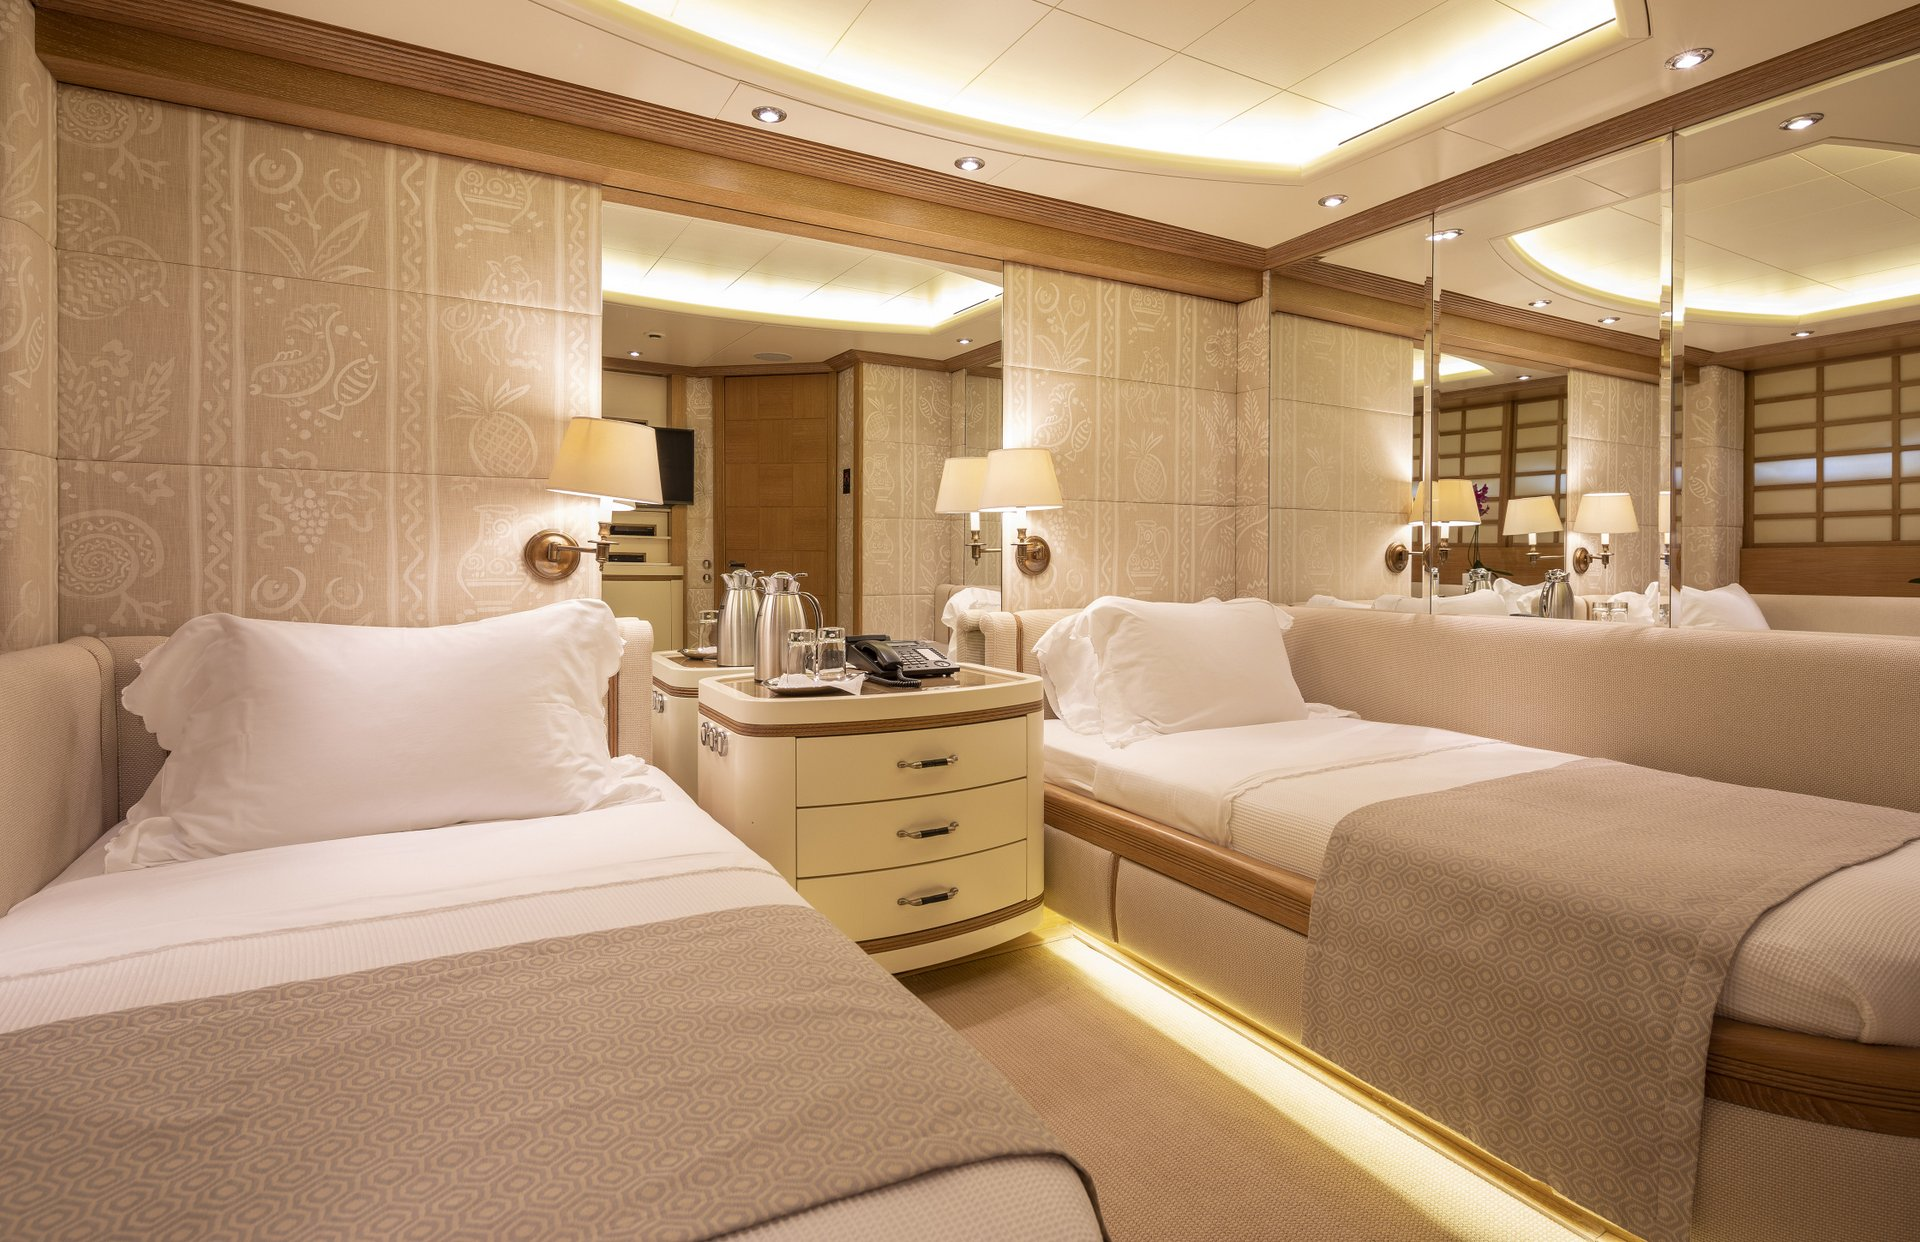 m/y alexandra yacht for charter twin cabin beds